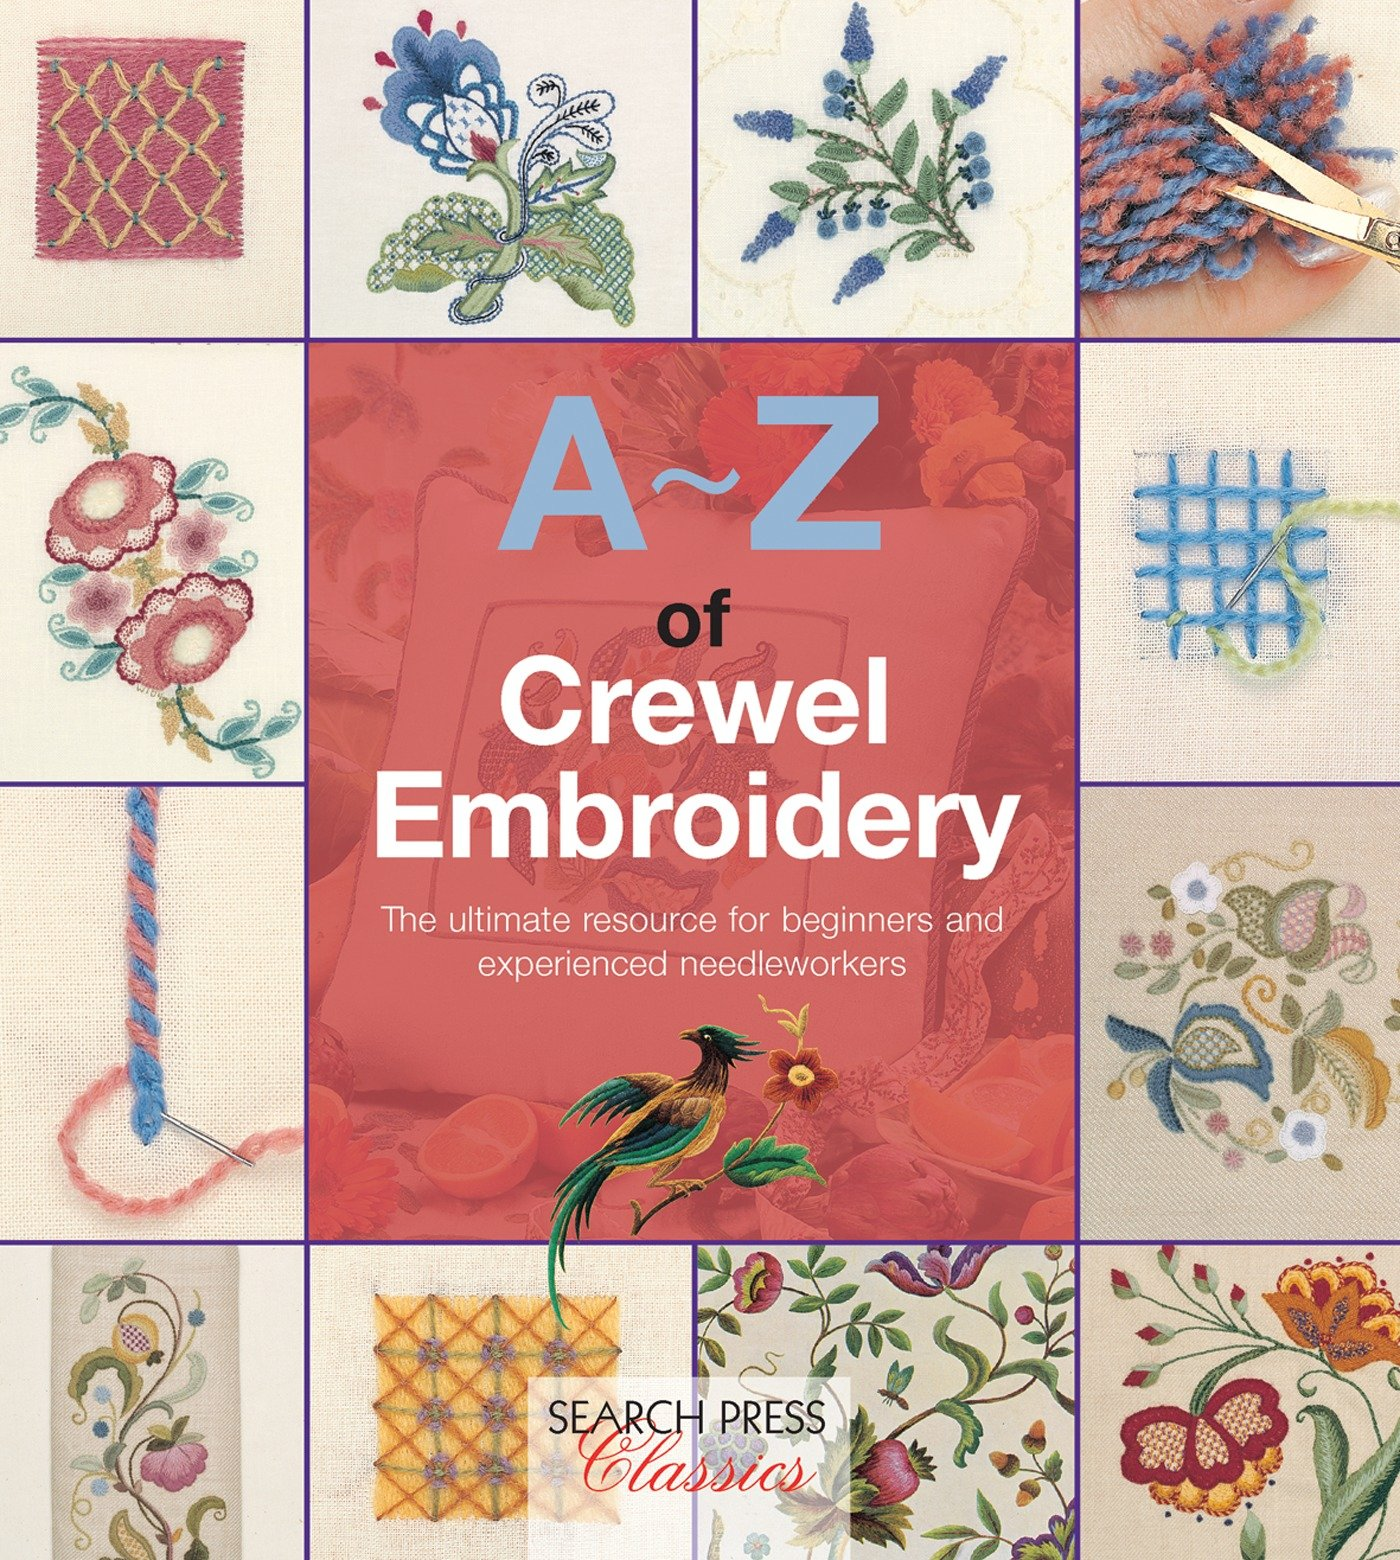 A-Z of Crewel Embroidery (A-Z of Needlecraft)